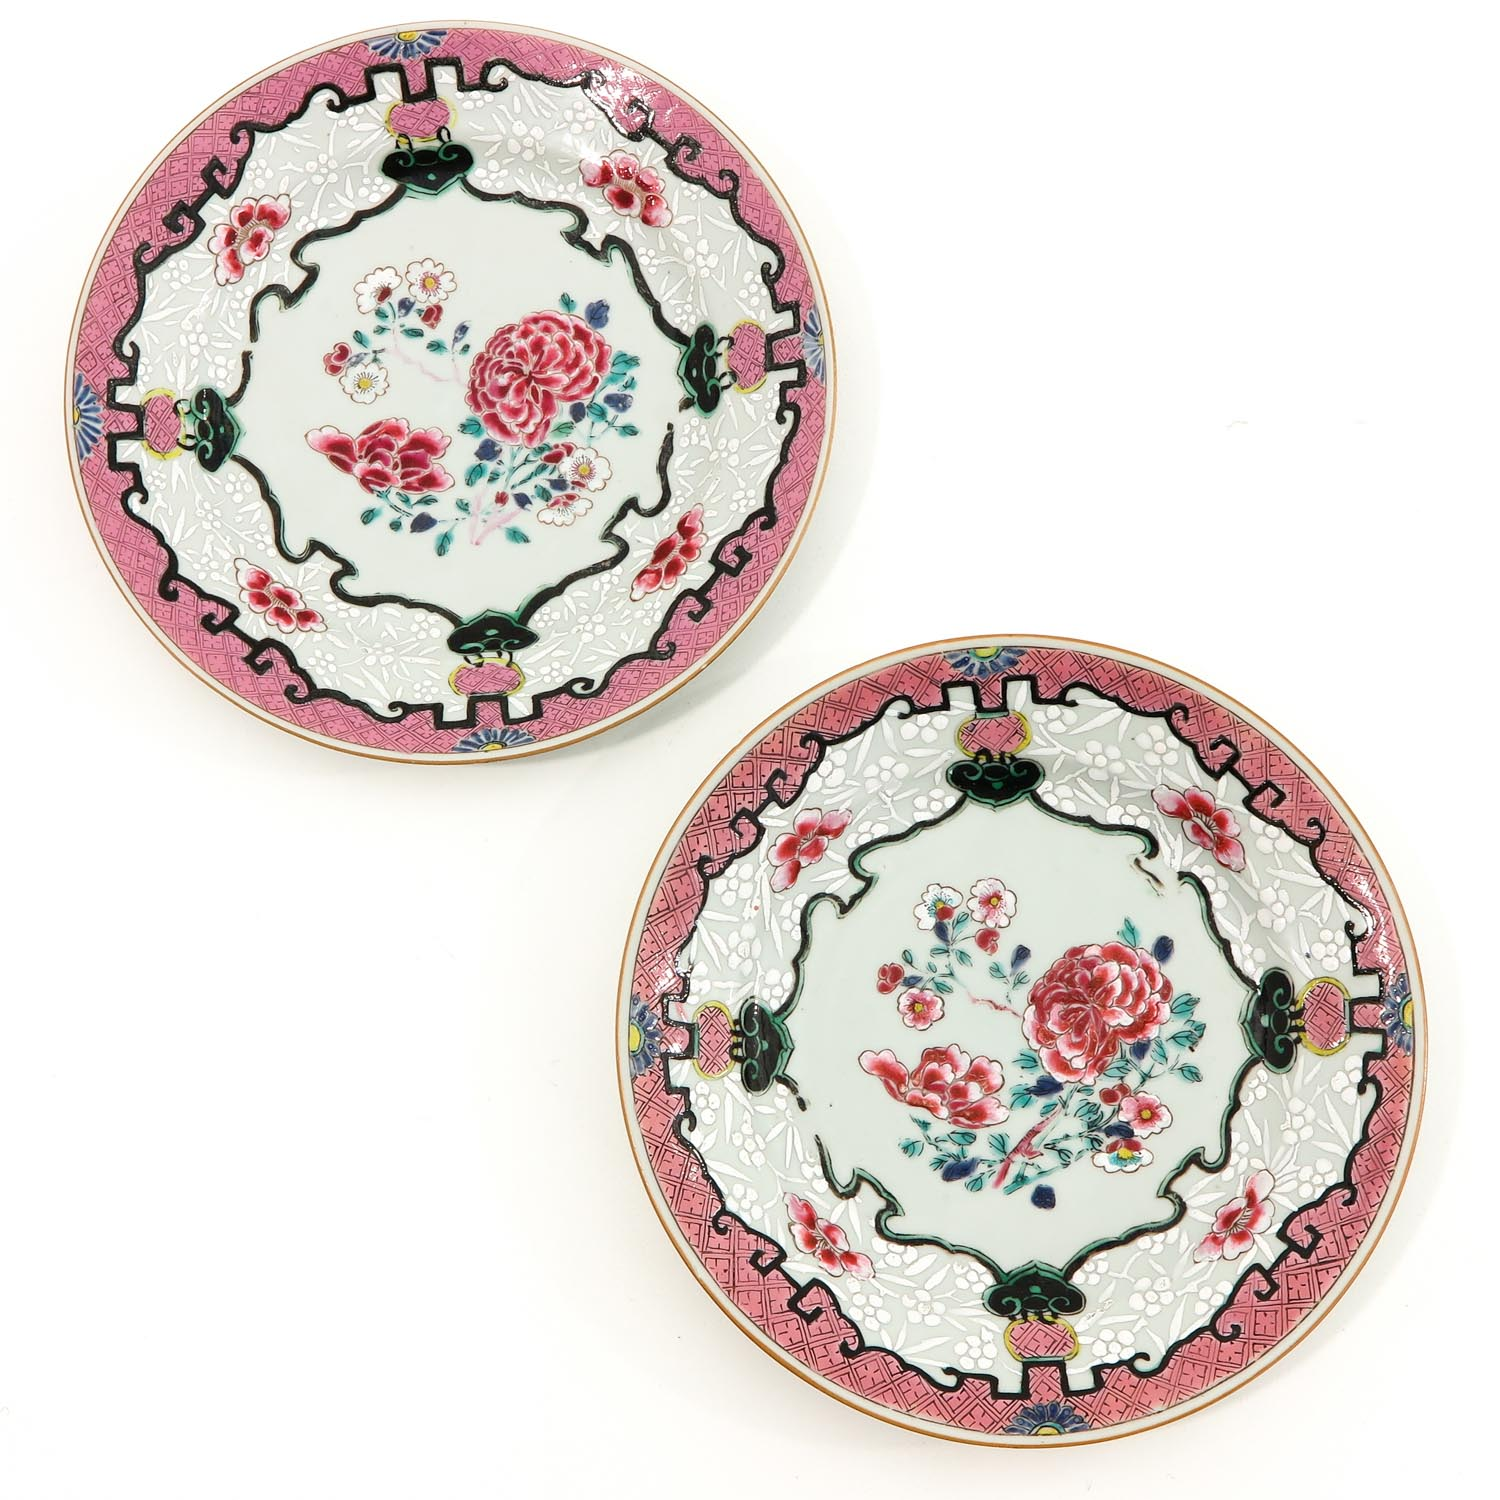 A Series of 4 Famille Rose Plates - Image 3 of 9